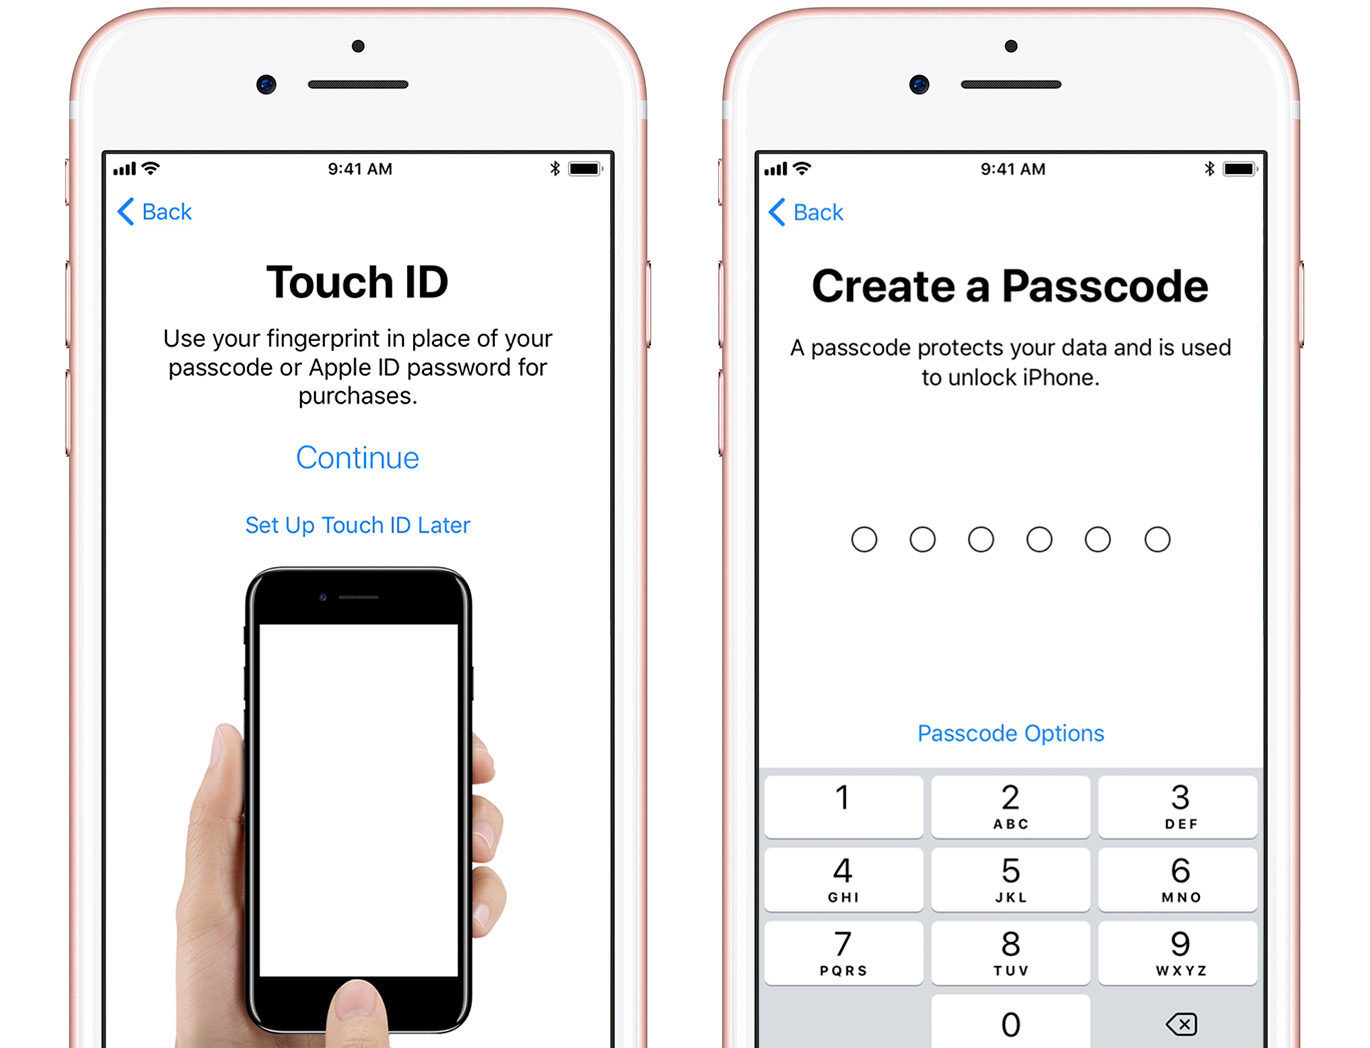 Touch ID and Screen Lock passcode setup screens.